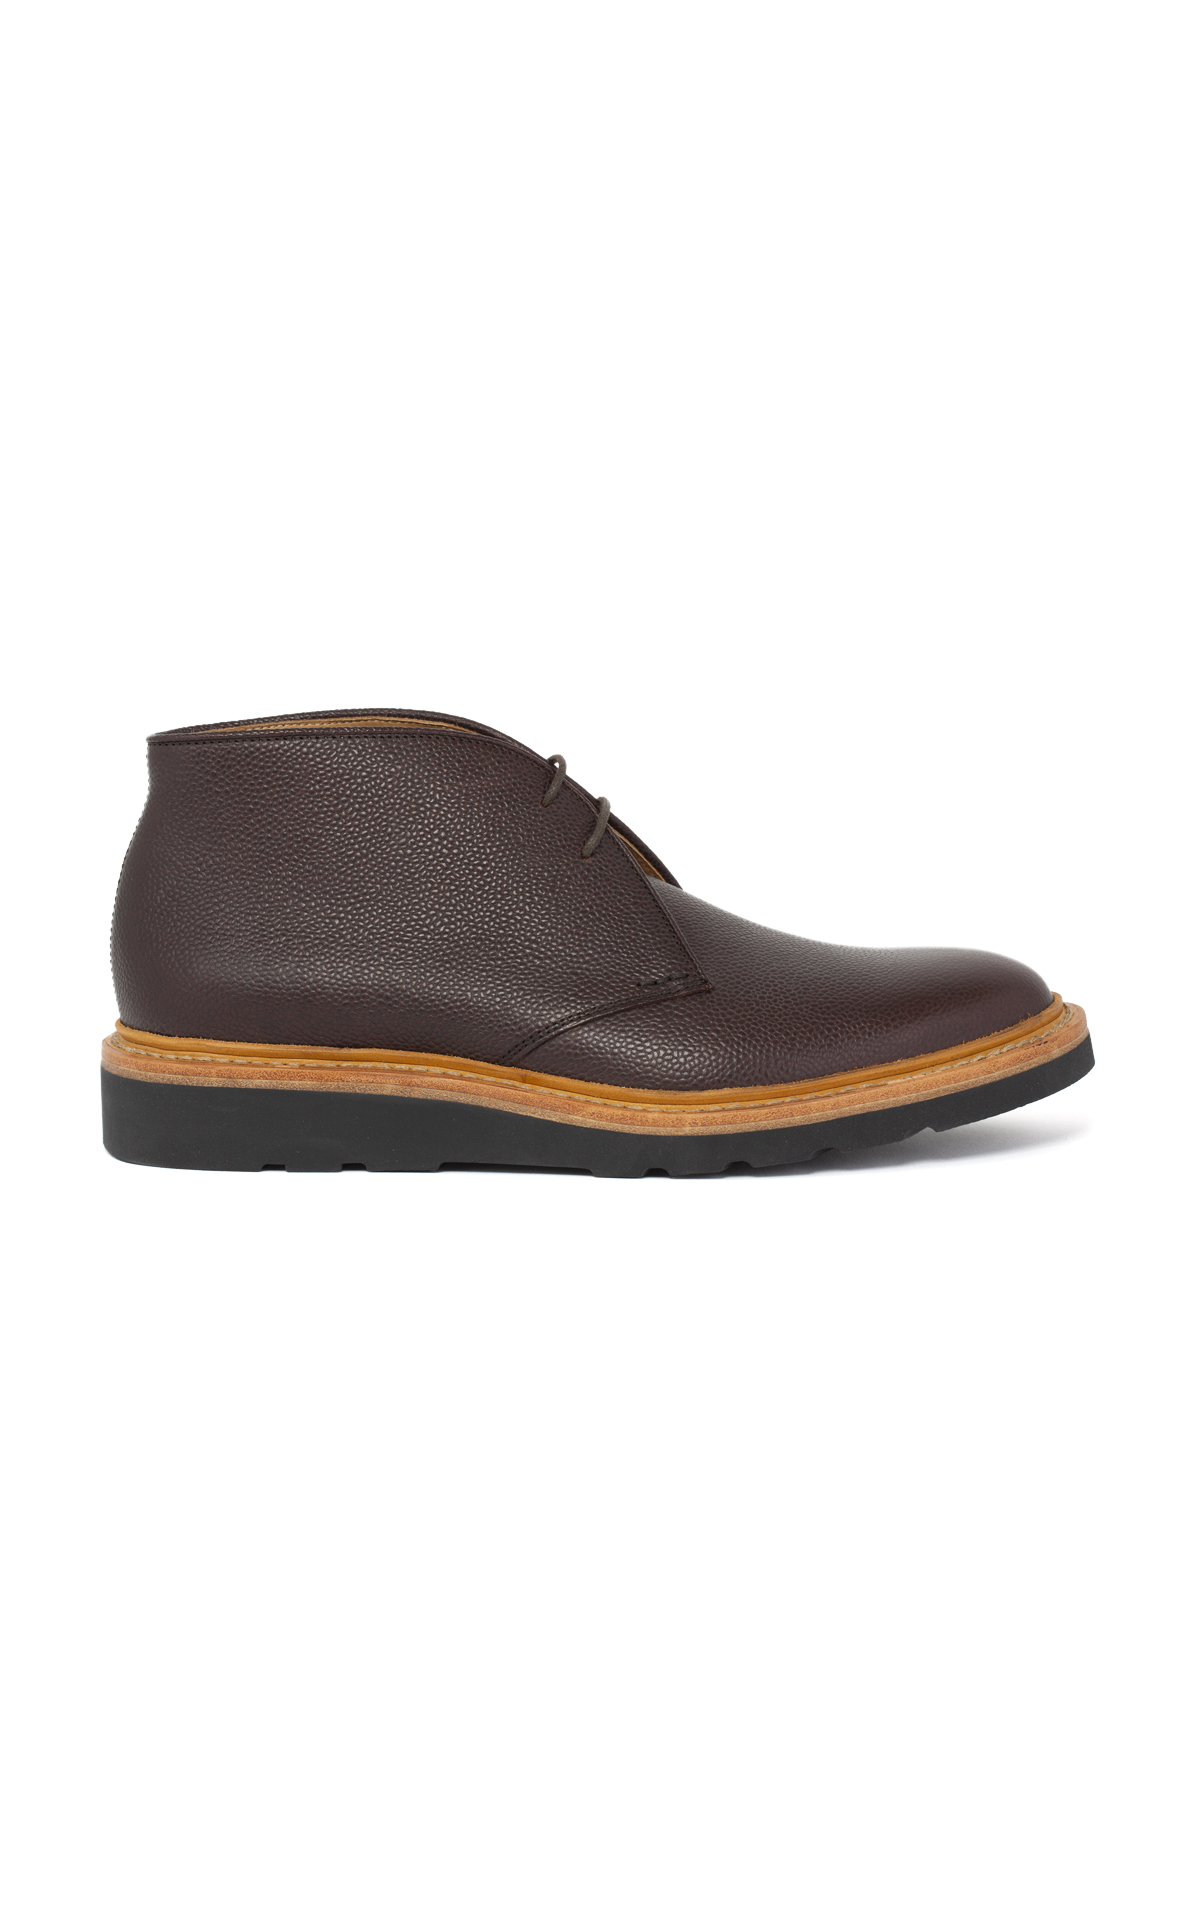 Heschung Brown leather derbies